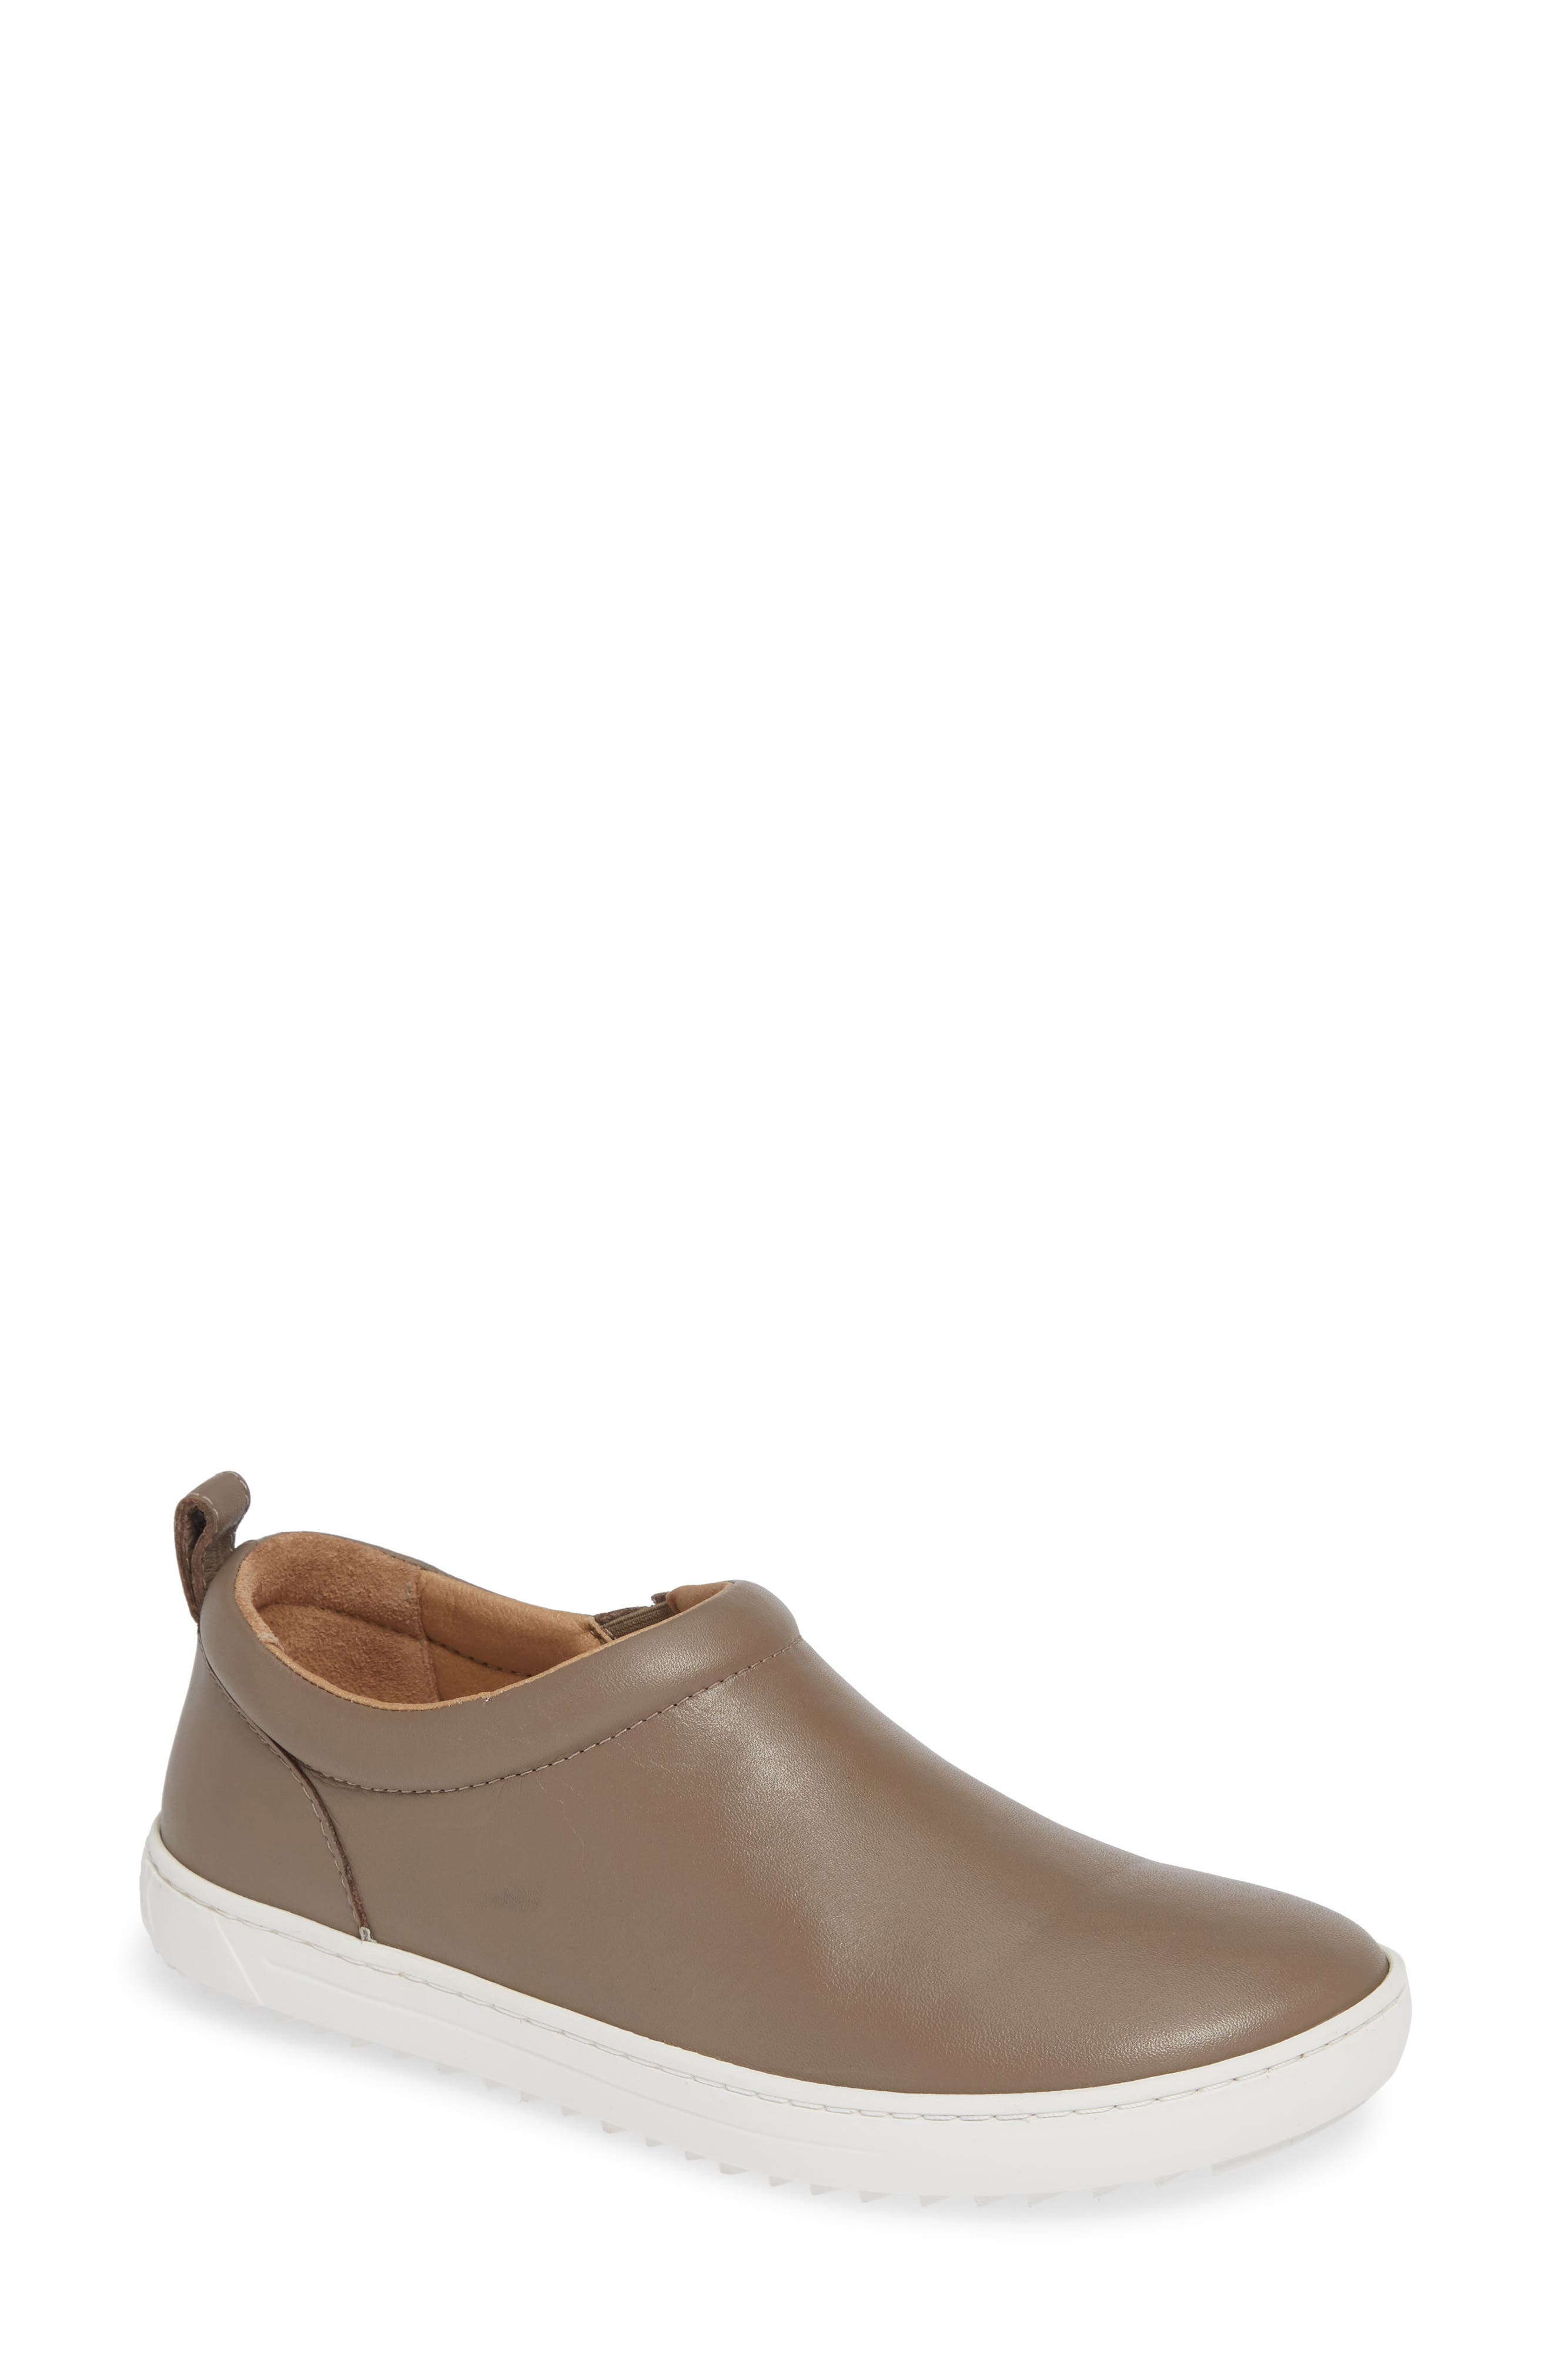 Rena Slip-On Sneaker,                         Main,                         color, TAUPE LEATHER